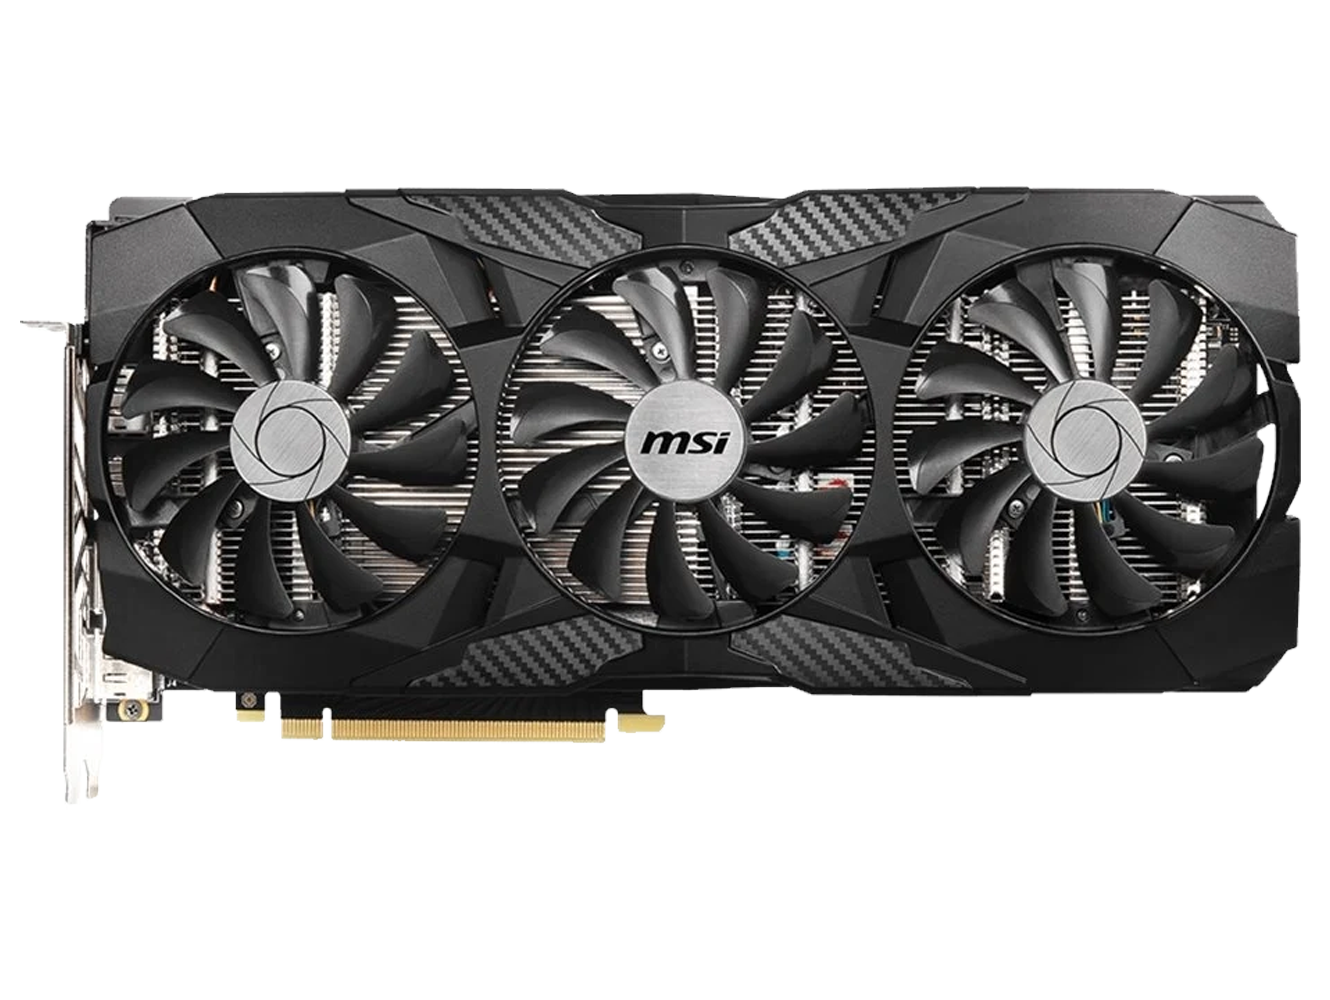 MSI RTX 2070 SG X TRIO 8GB